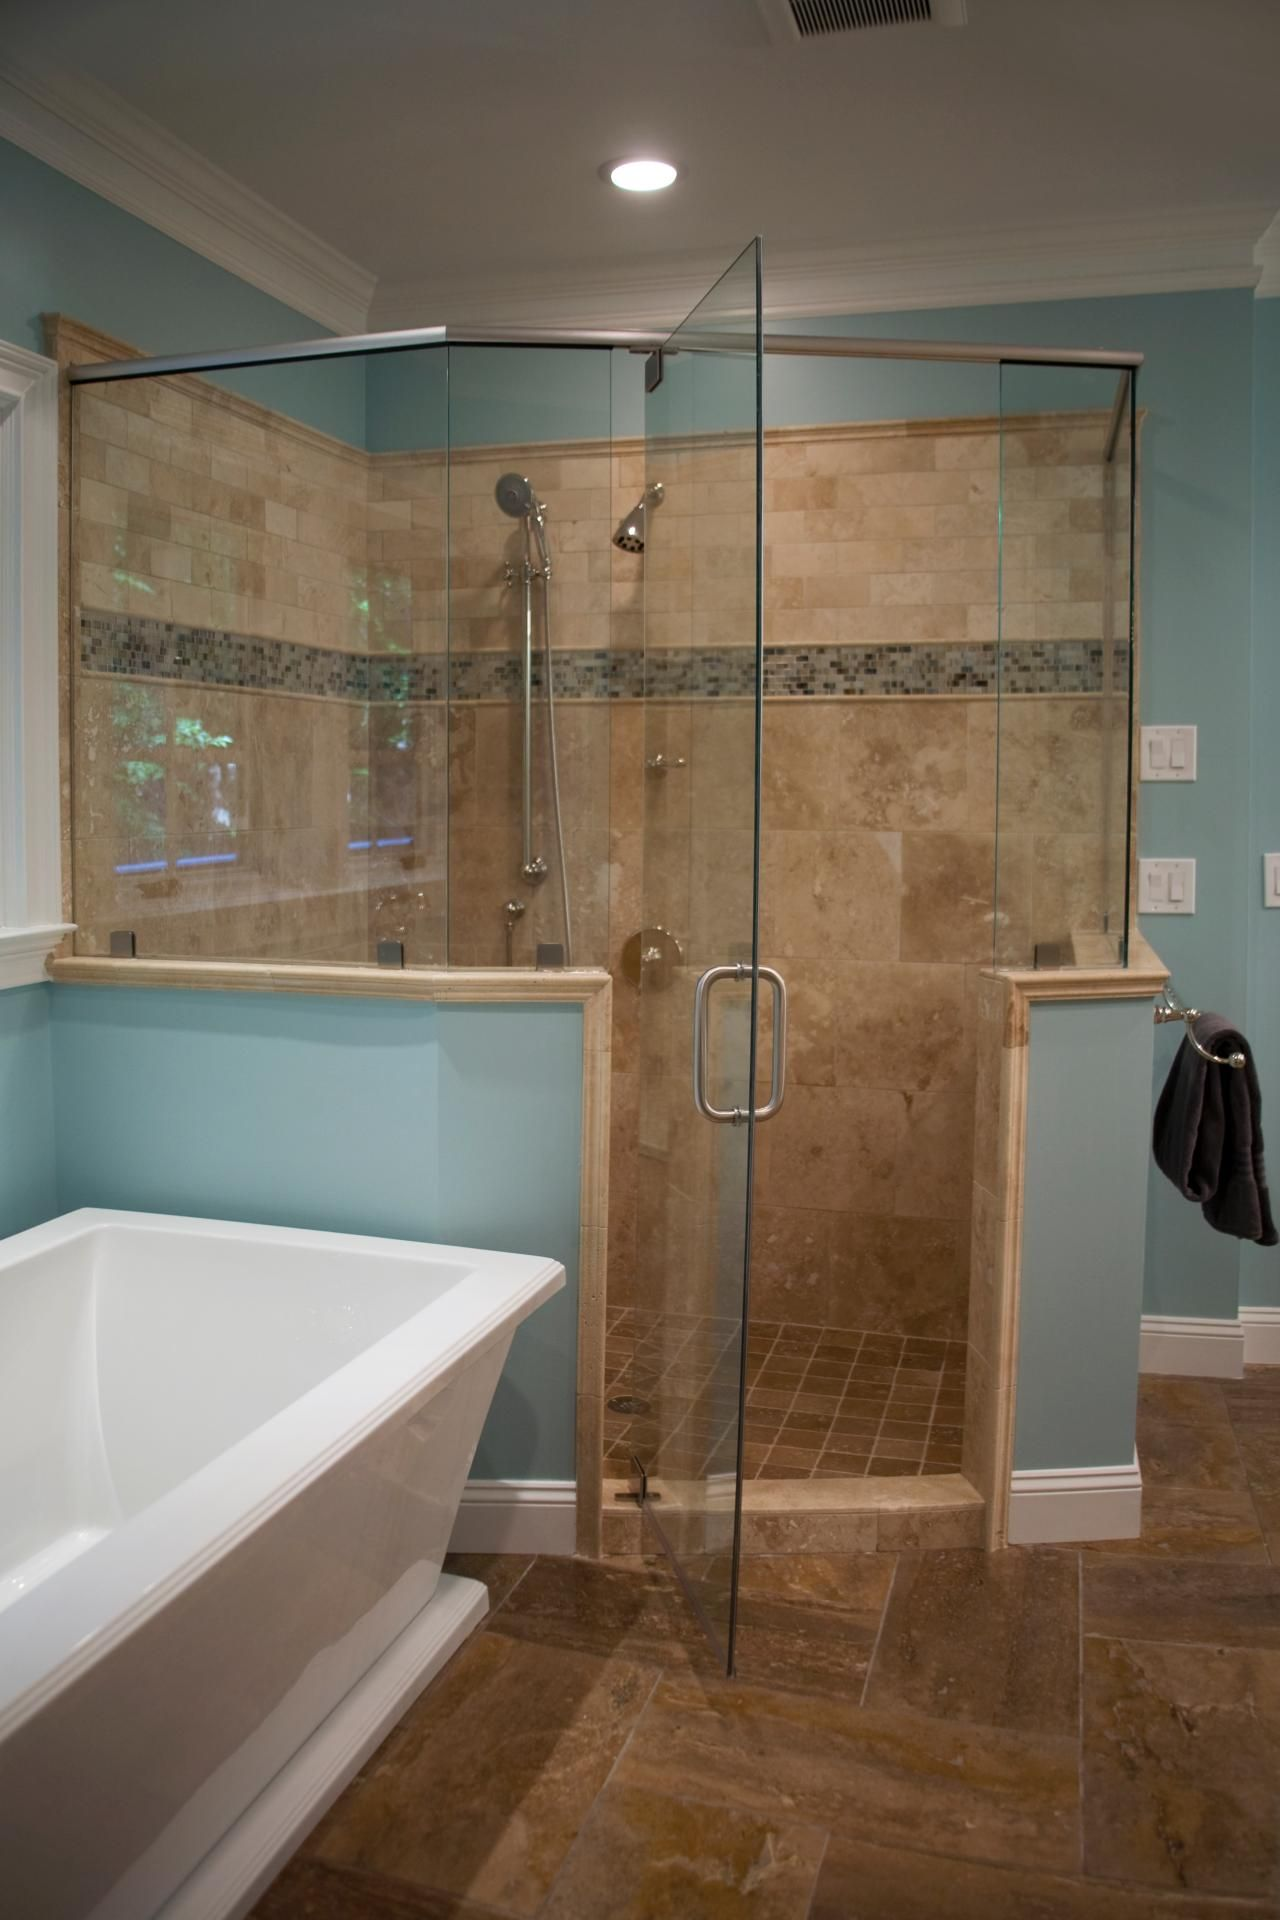 Bathroom Knee Wall this light blue master bathroom features a spacious glass enclosed